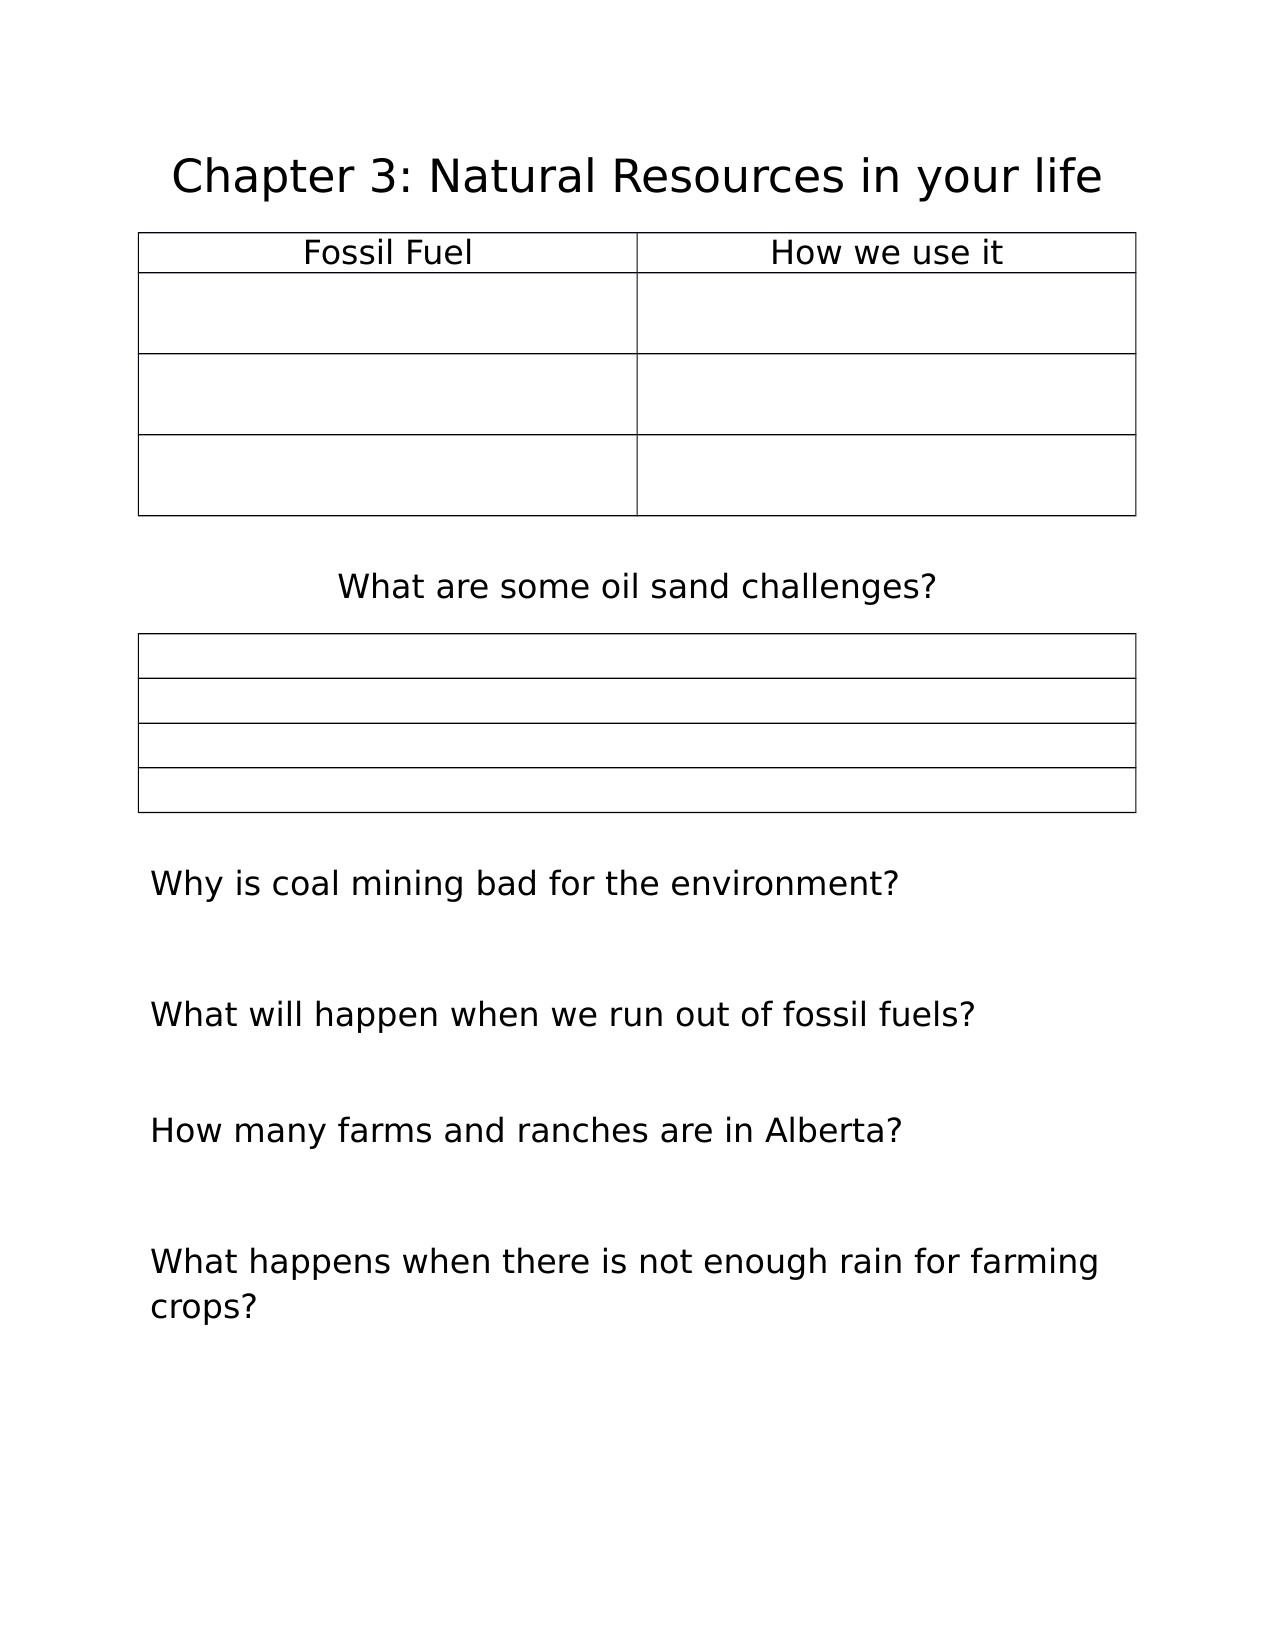 hight resolution of Voices of Alberta Chapter 3 Resource Preview   Social studies